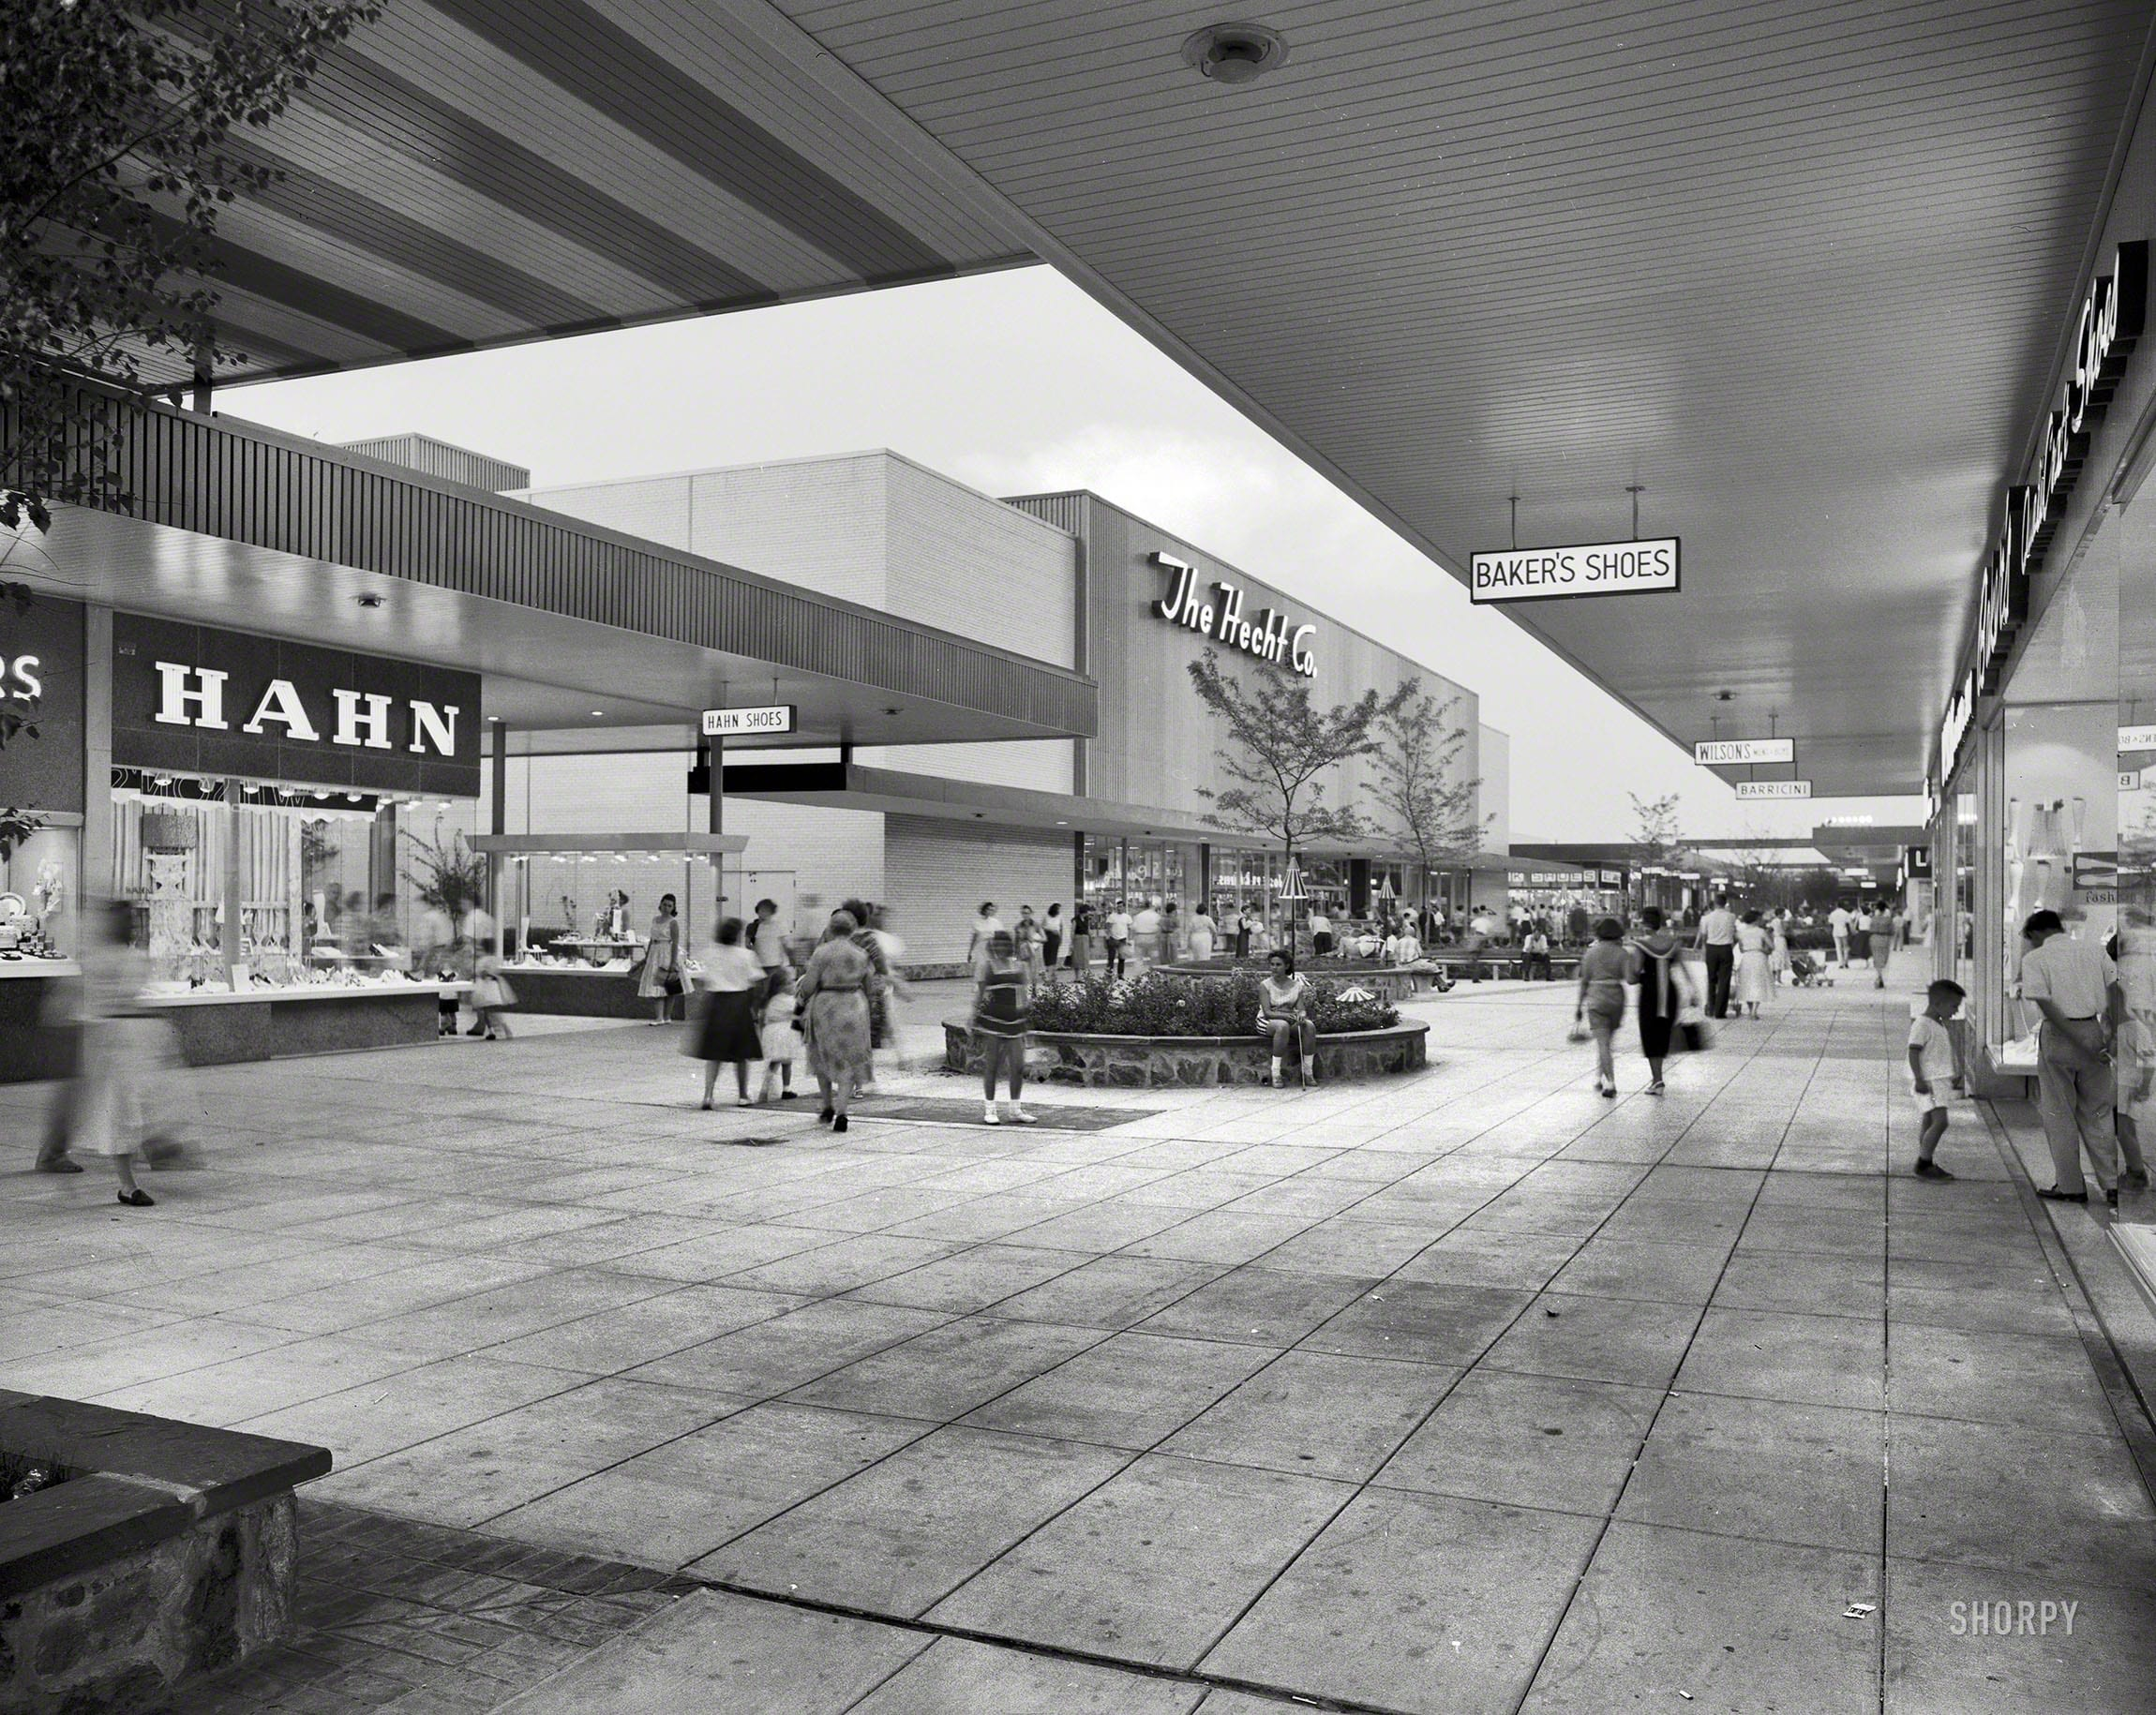 Prince George's Plaza in 1959